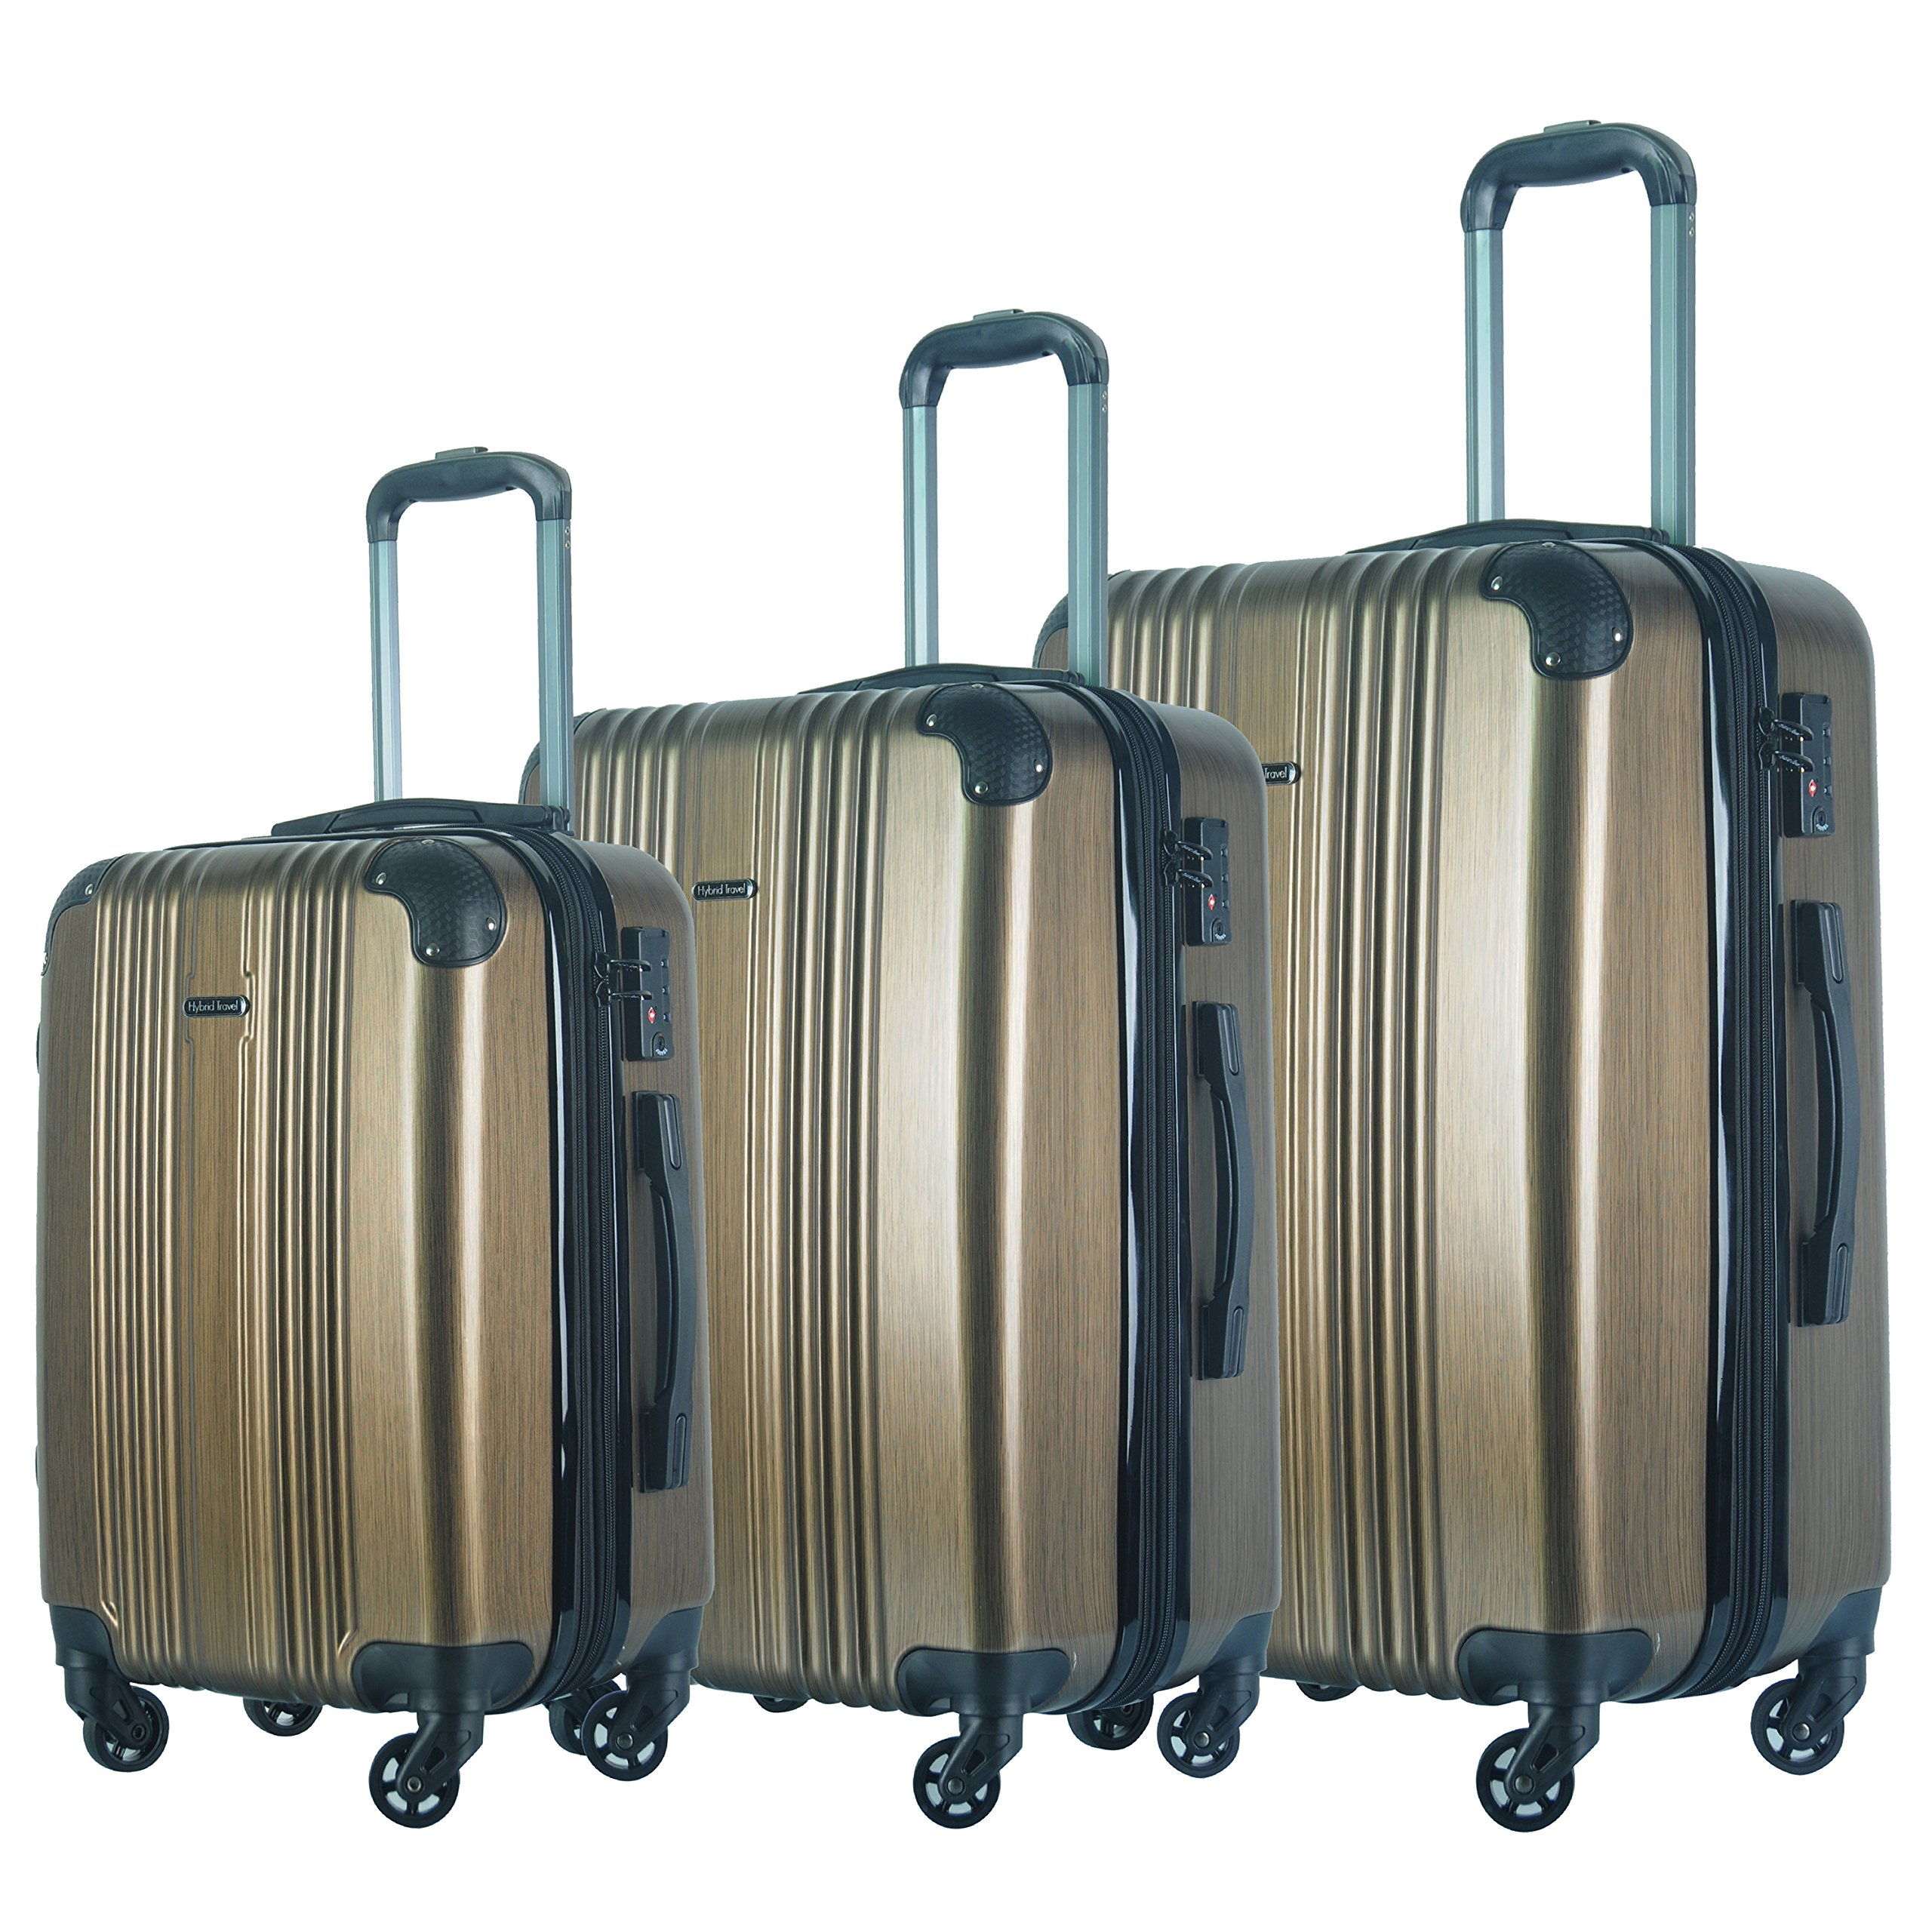 3 PC Luggage Set Durable Lightweight Spinner Suitecase LUG3 6111 GOLD